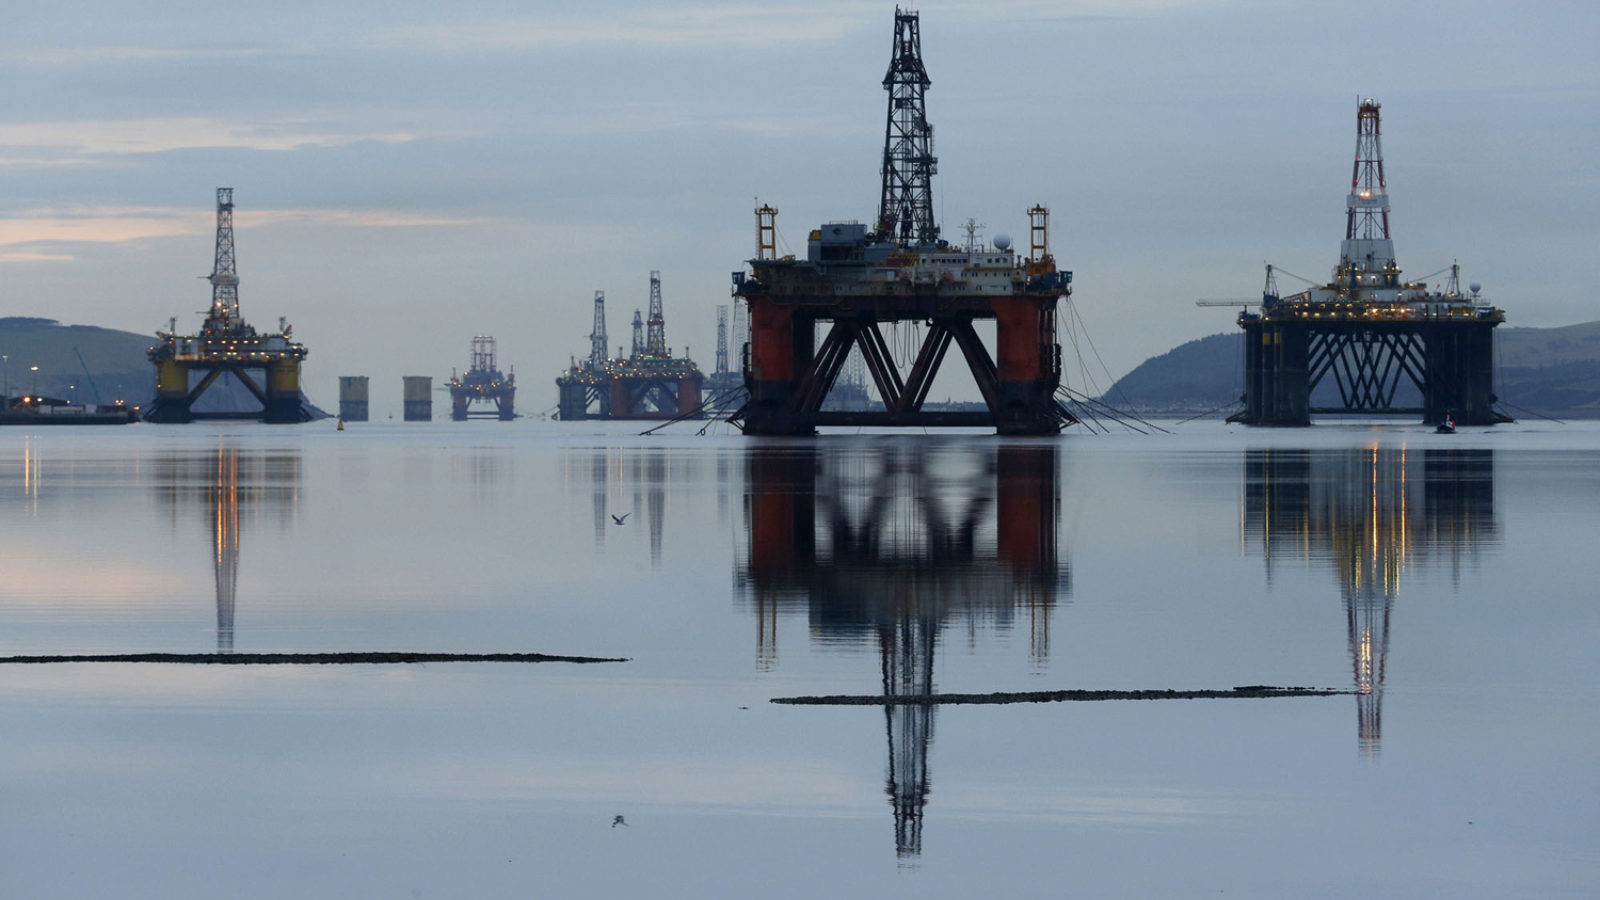 Rig and drilling equipment stacking, preservation and maintenance